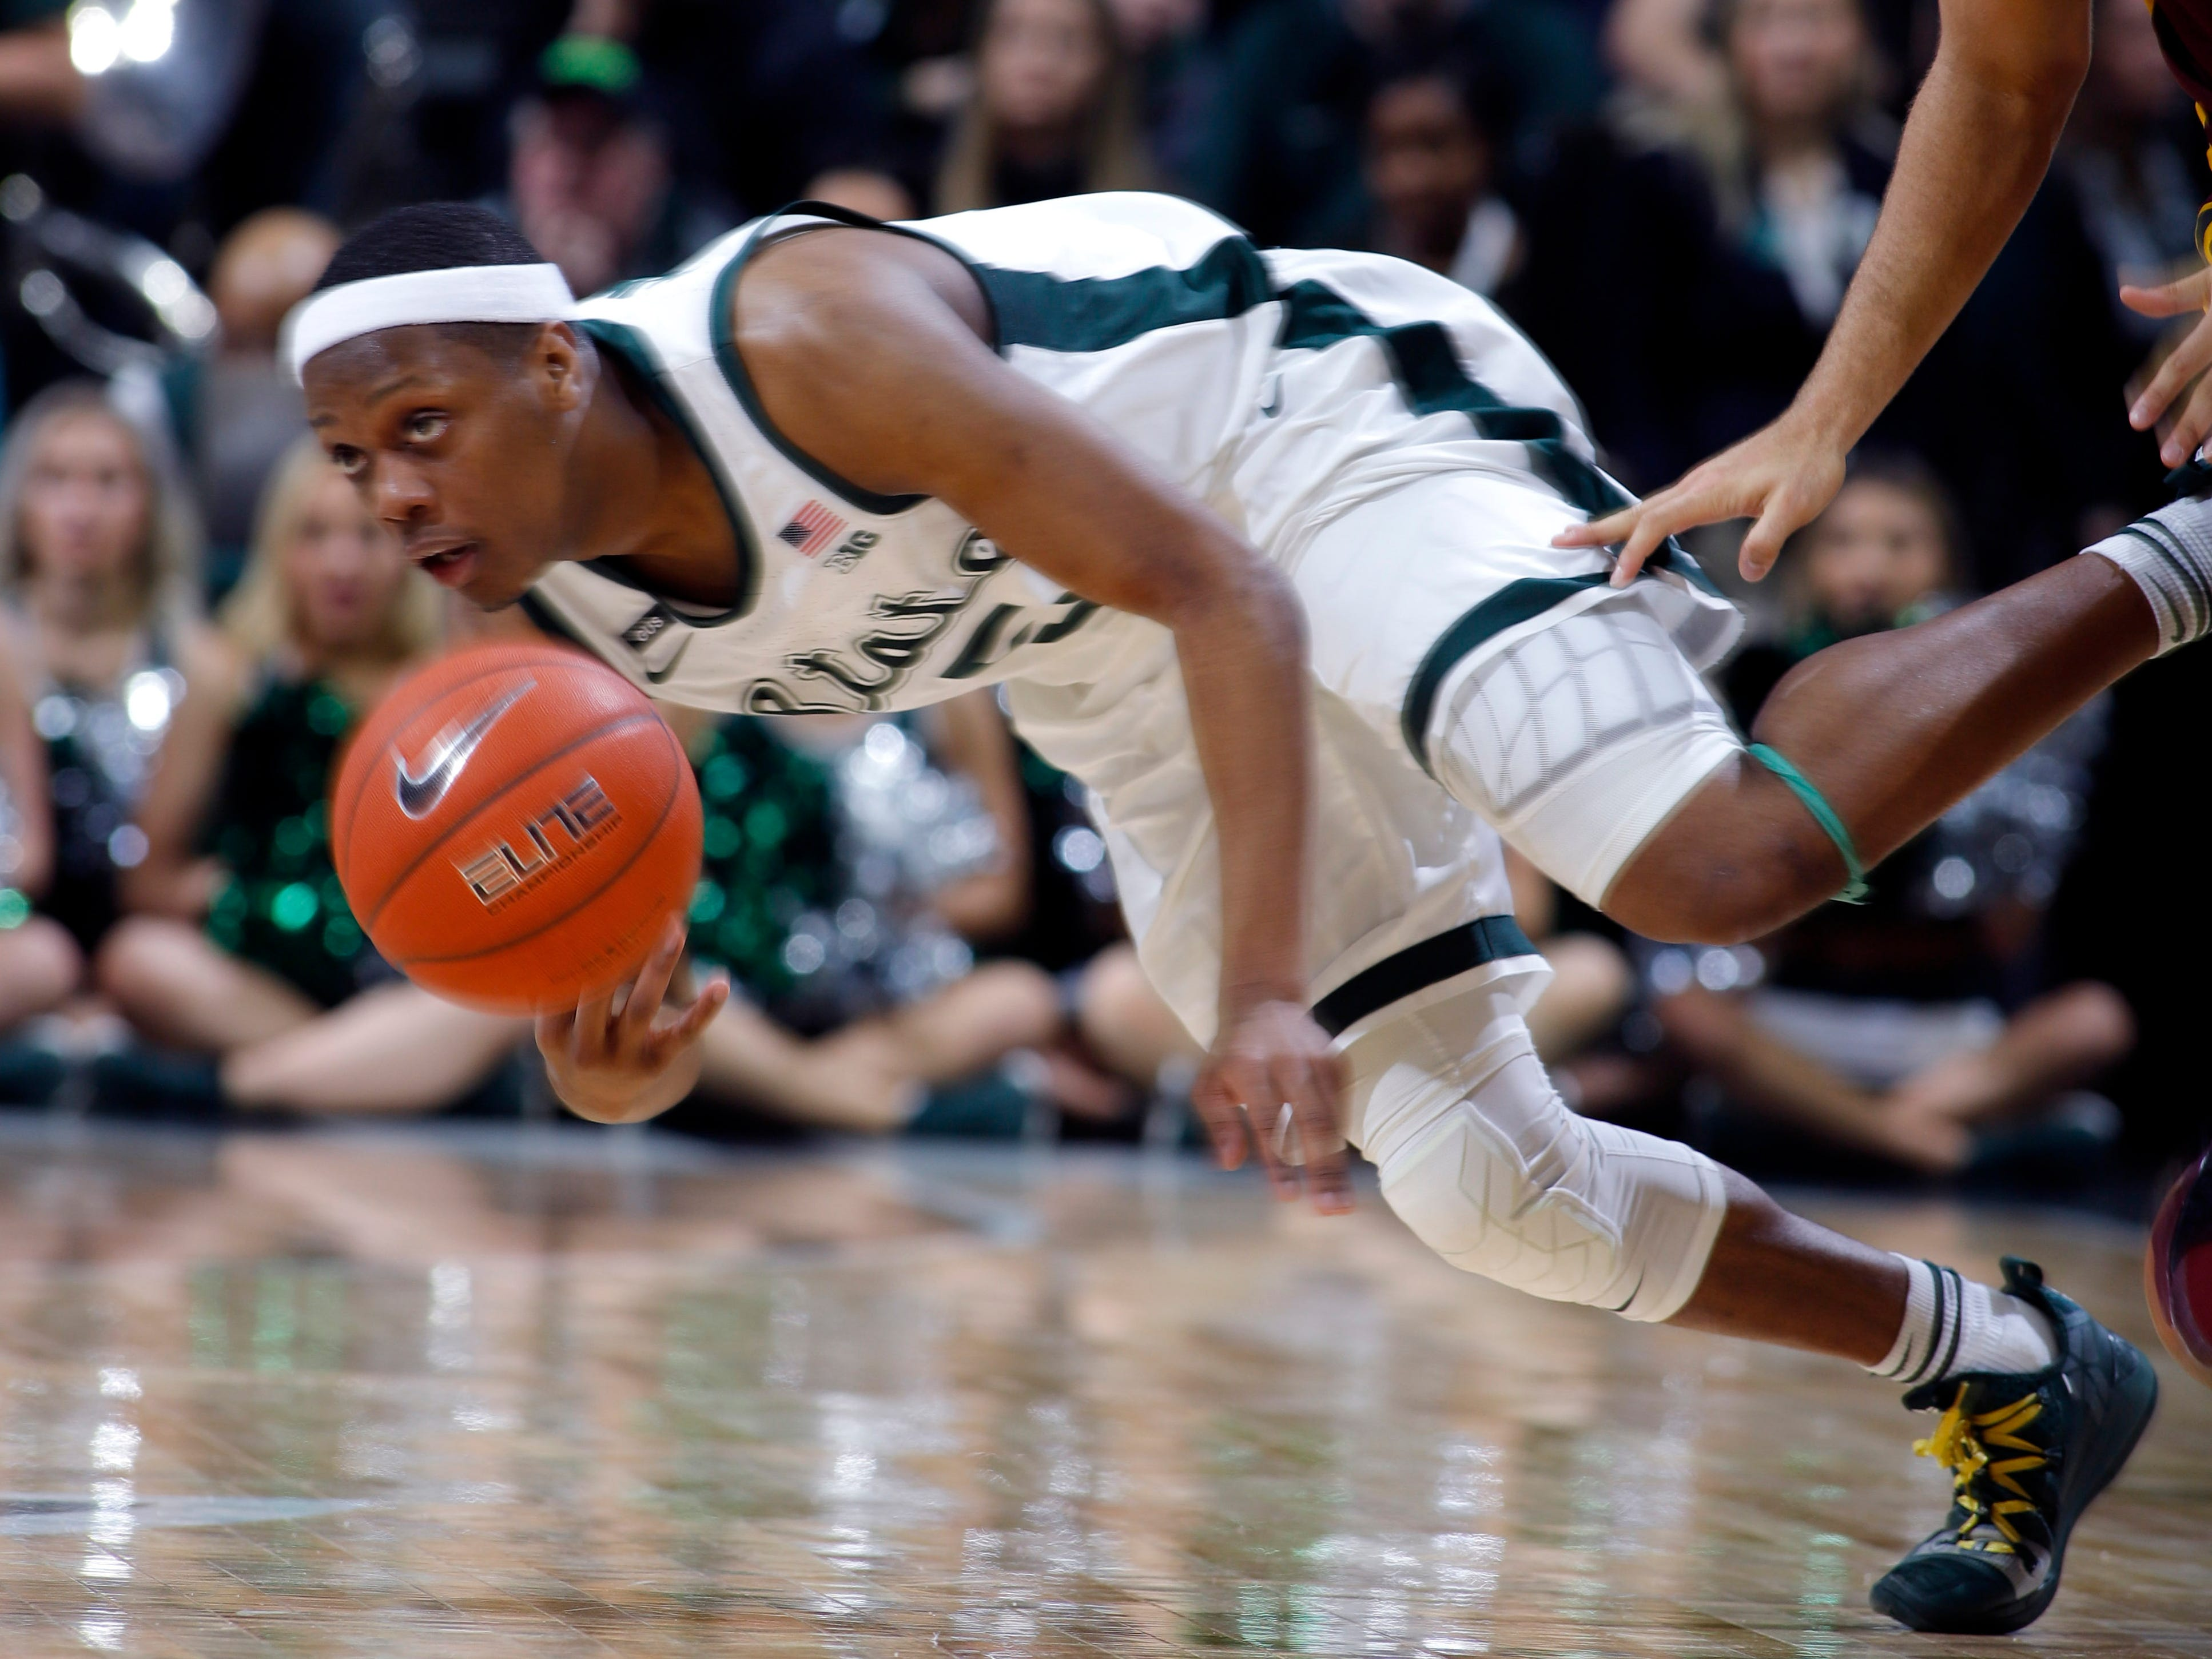 Michigan State's Cassius Winston, left, dives for the ball on a steal against Minnesota's Gabe Kalscheur, right, during the second half.